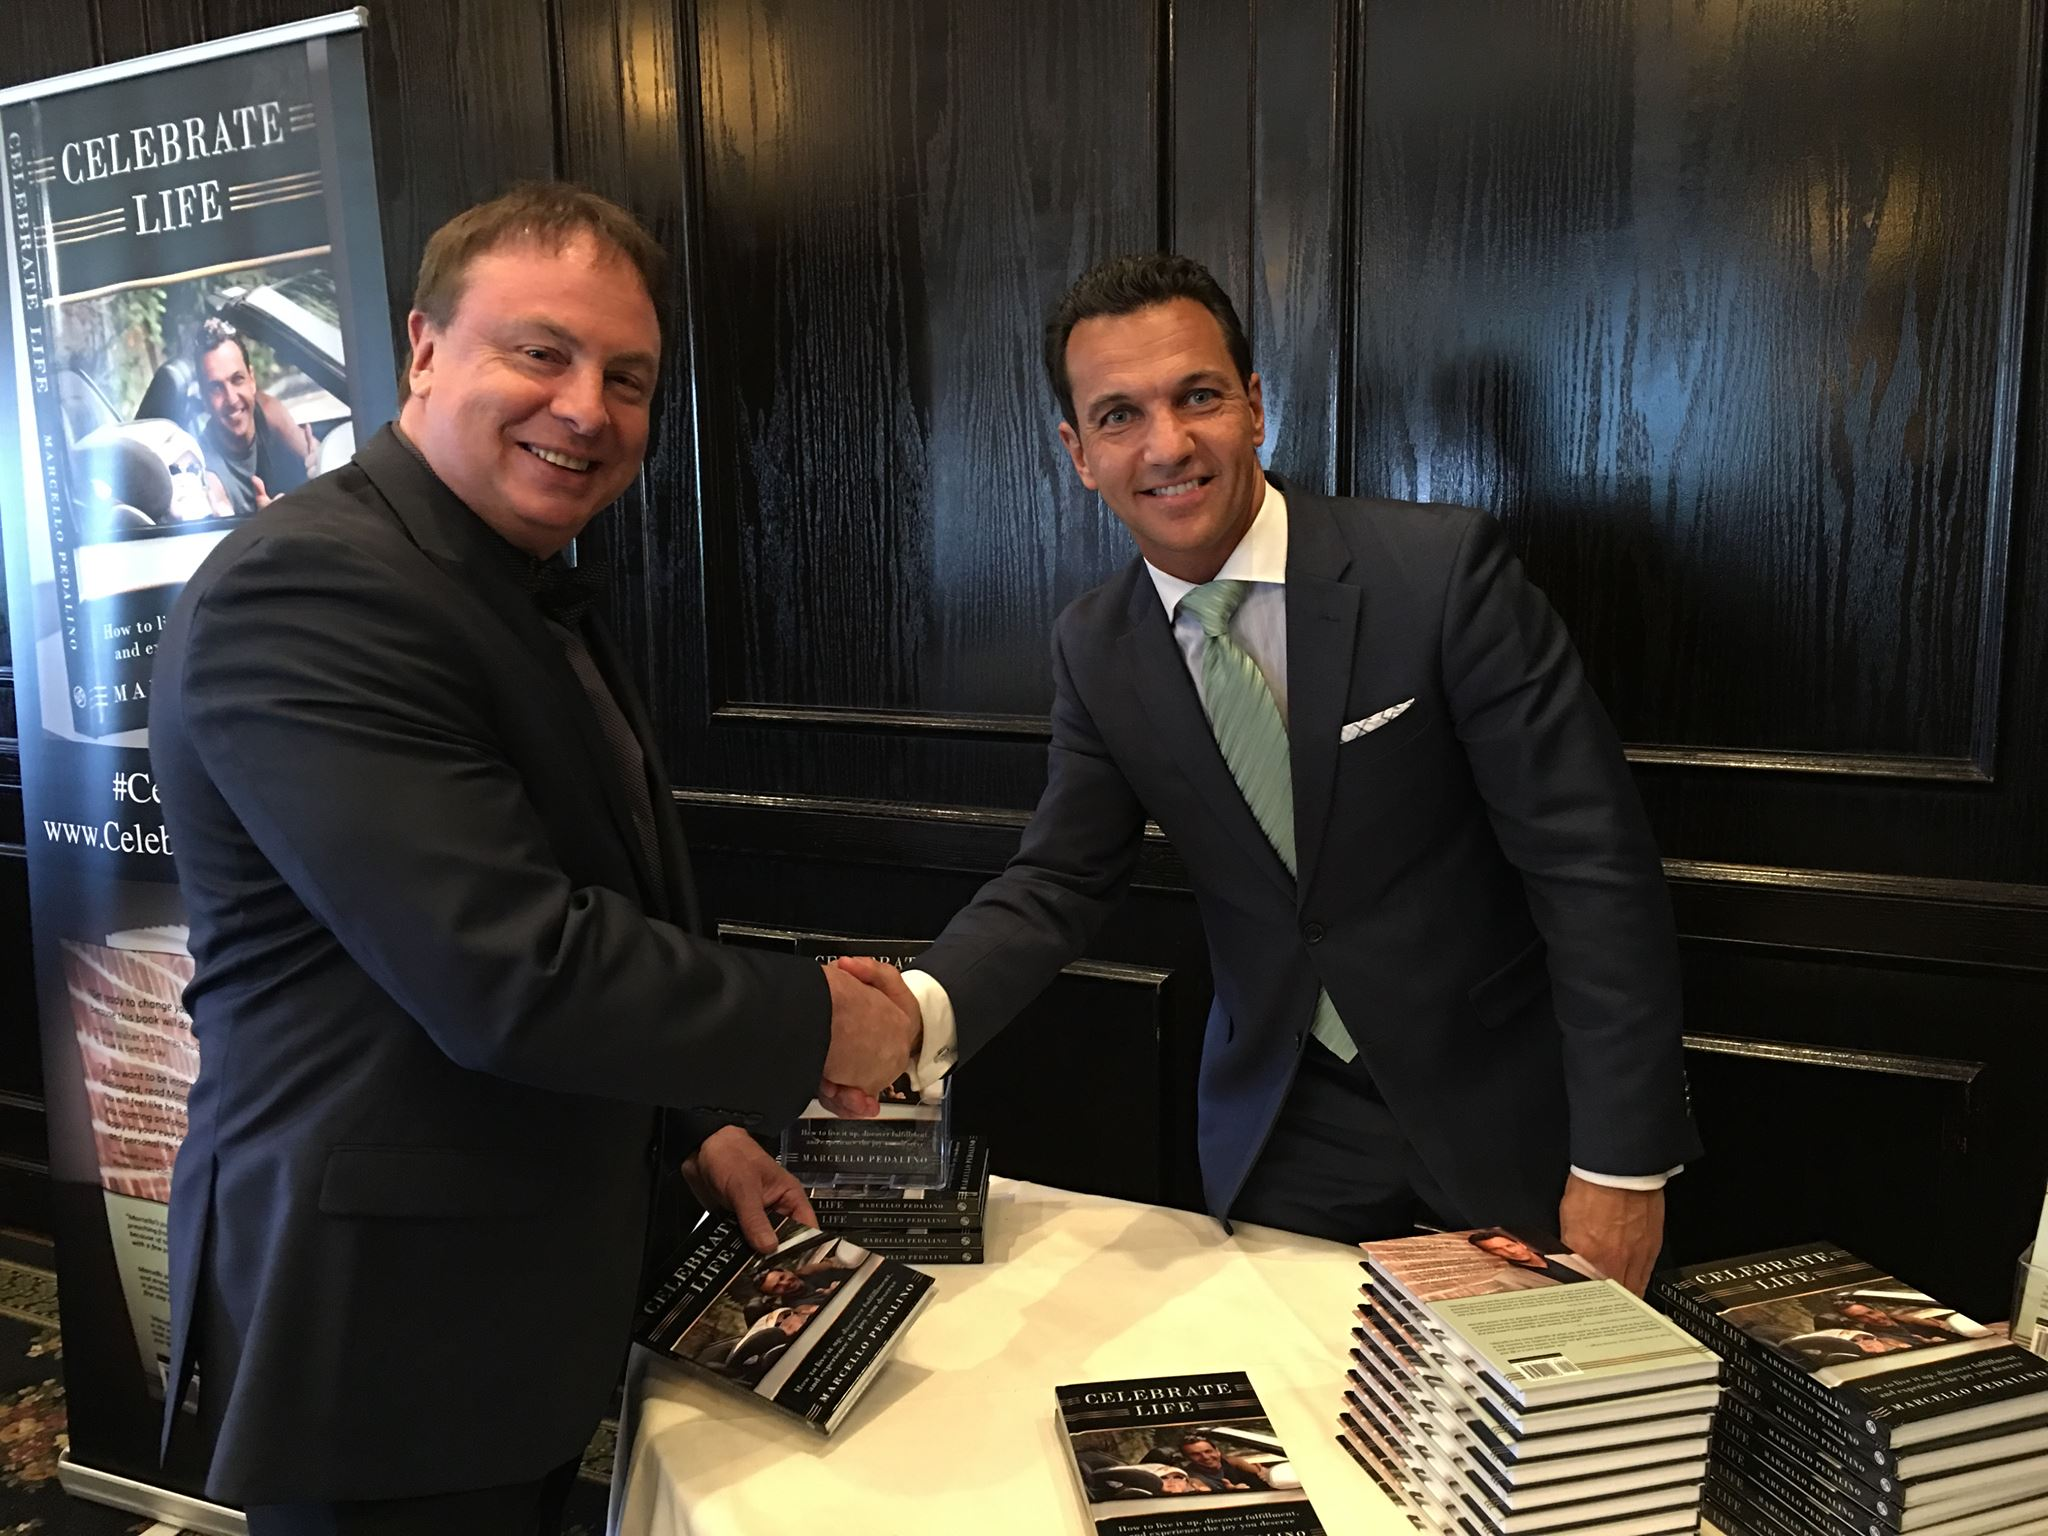 Celebrate Life author, Marcello Pedalino, at a New Jersey book signing.